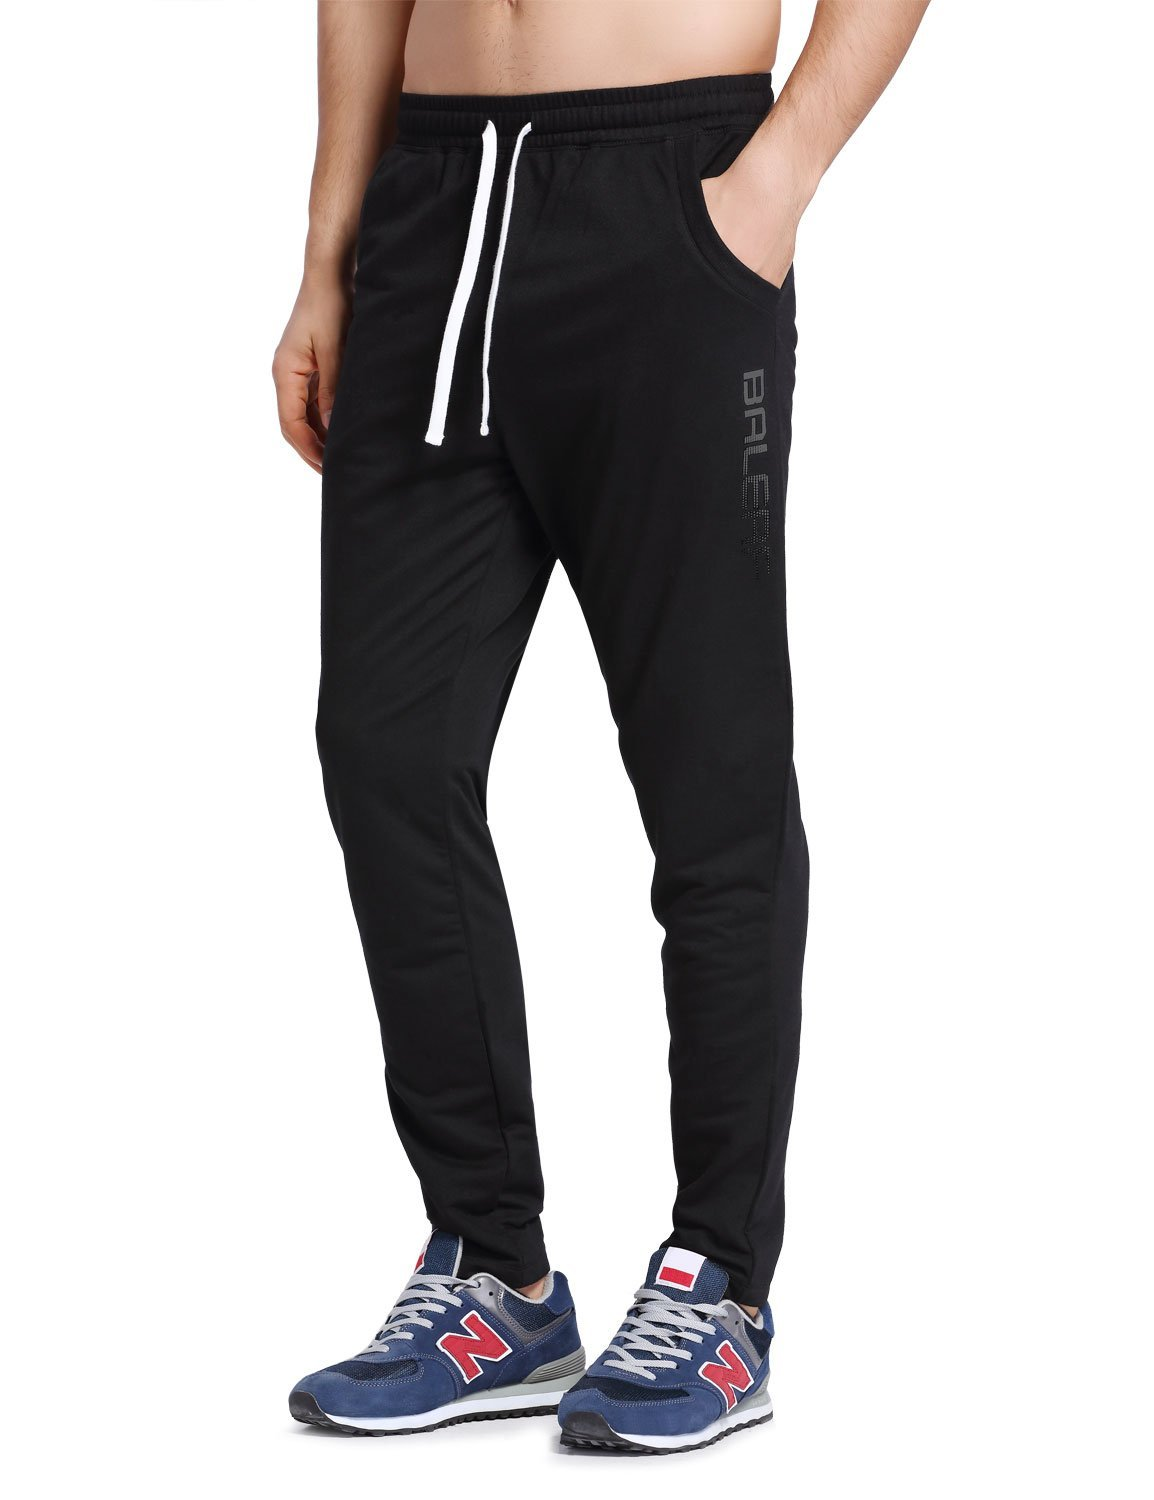 Baleaf Mens Tapered Athletic Running Pants